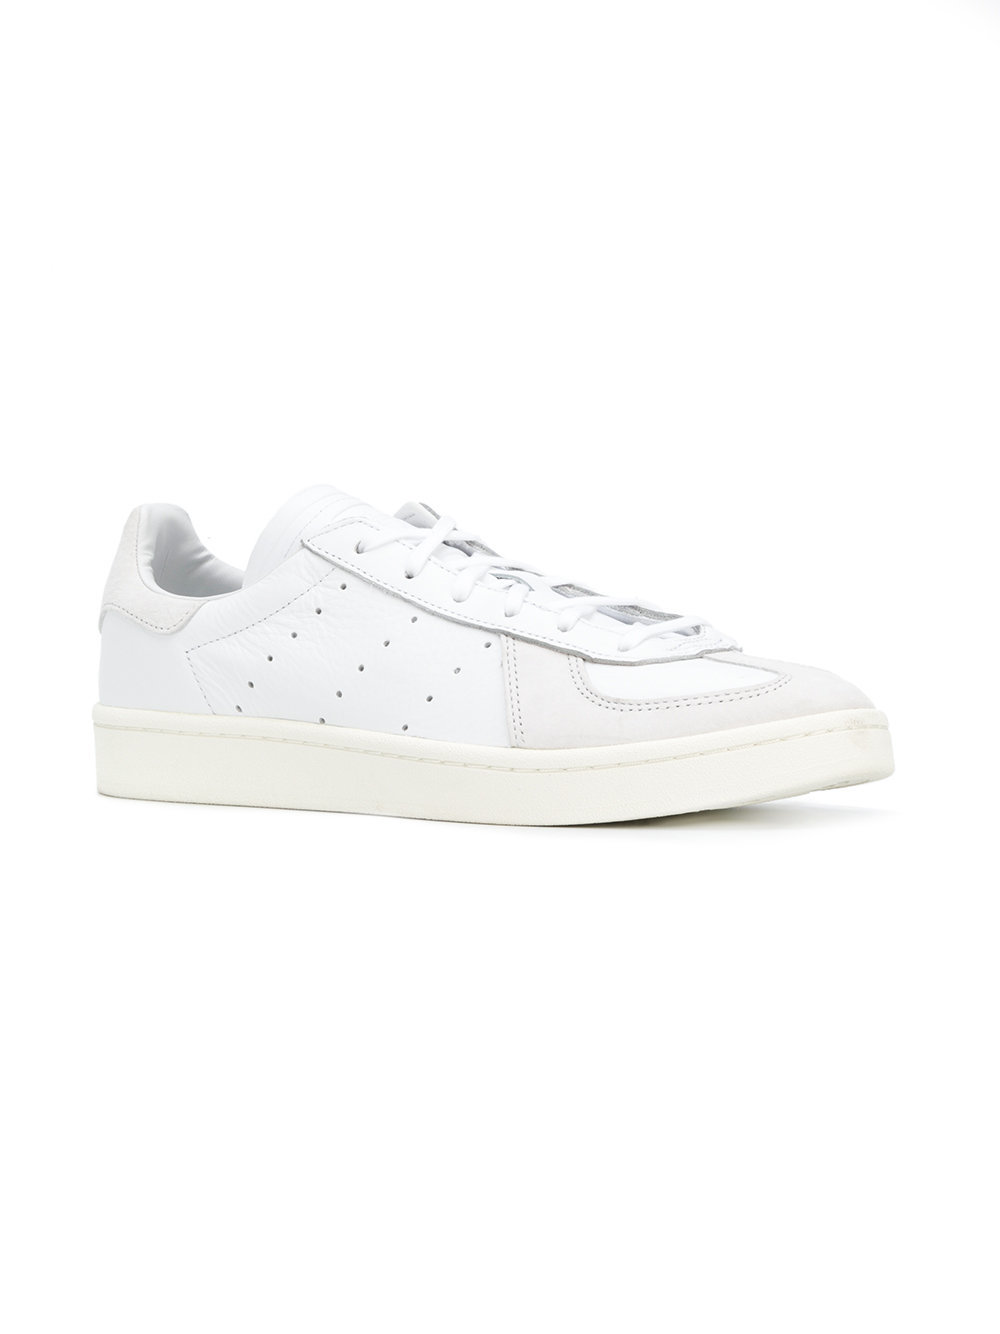 online store 85f19 fe1fd ... adidas Originals Bw Avenue Sneakers ...